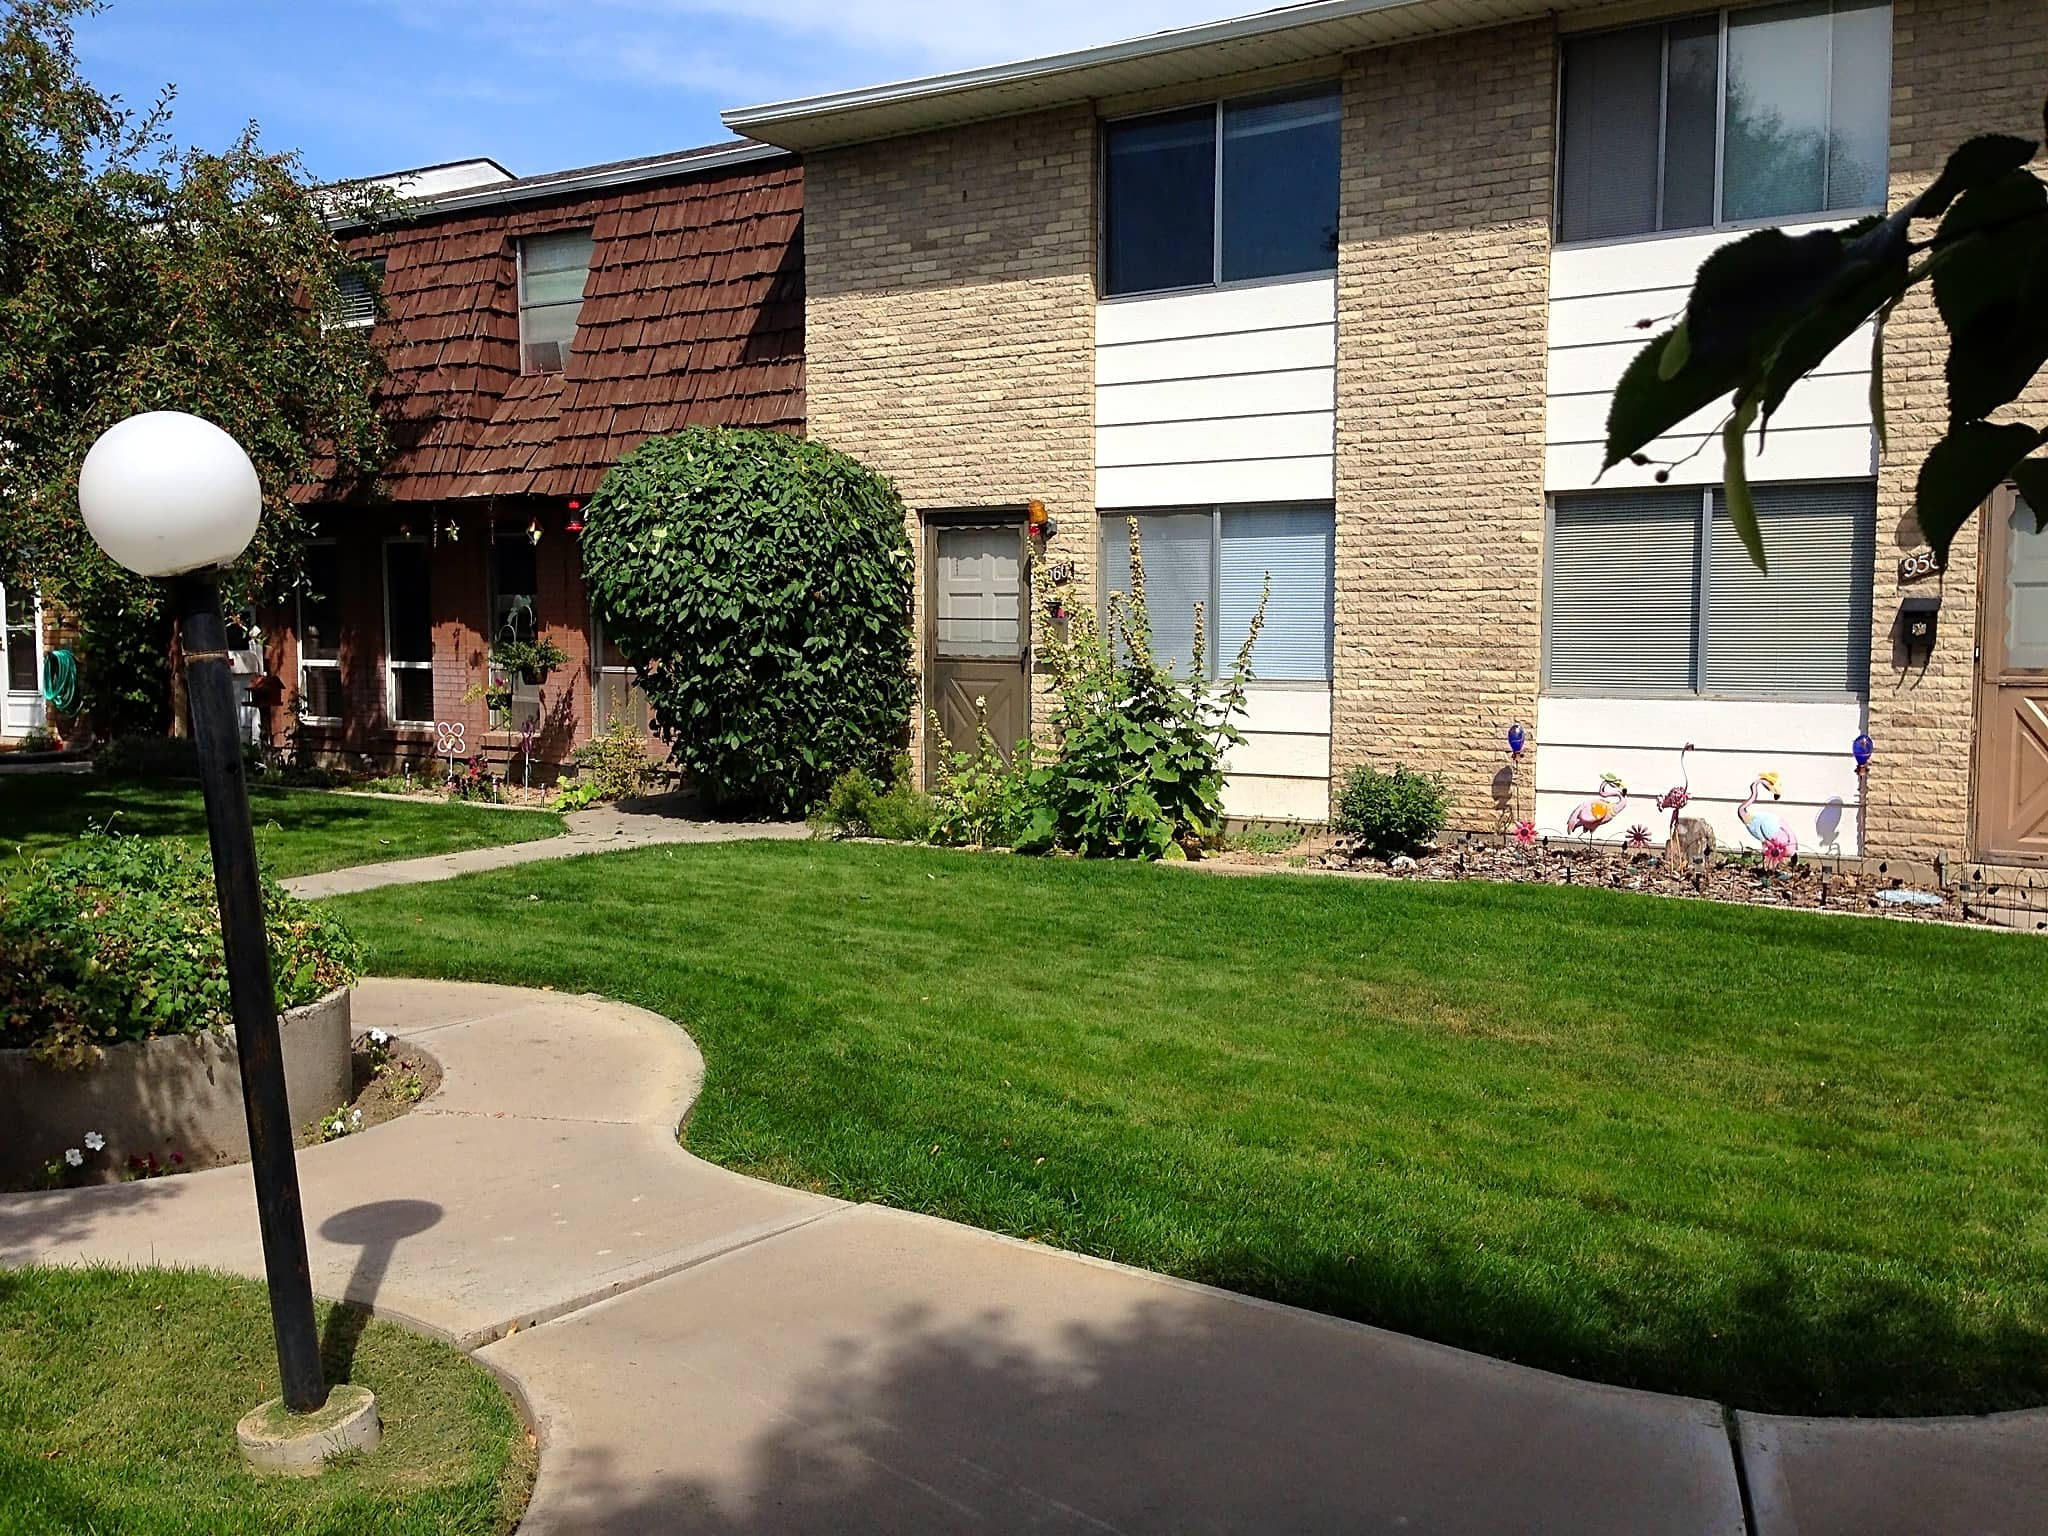 Condo for Rent in Pocatello